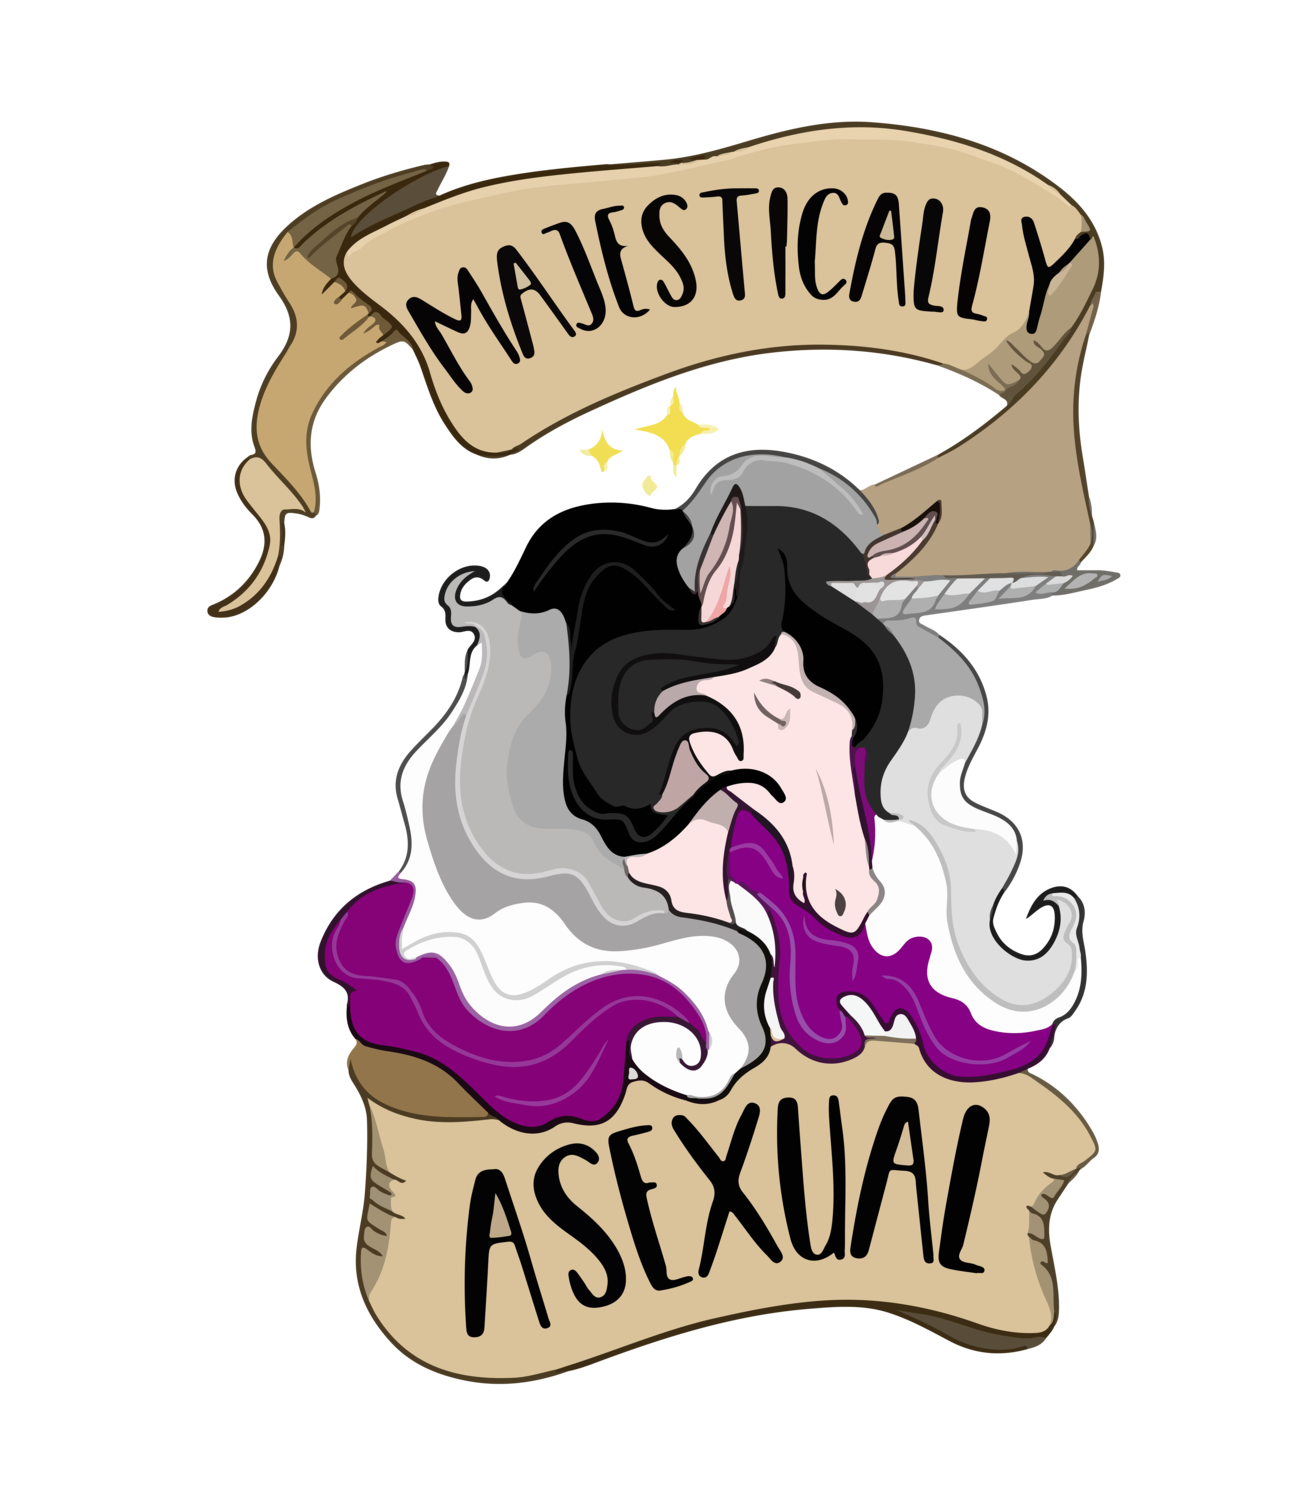 Majestically Asexual